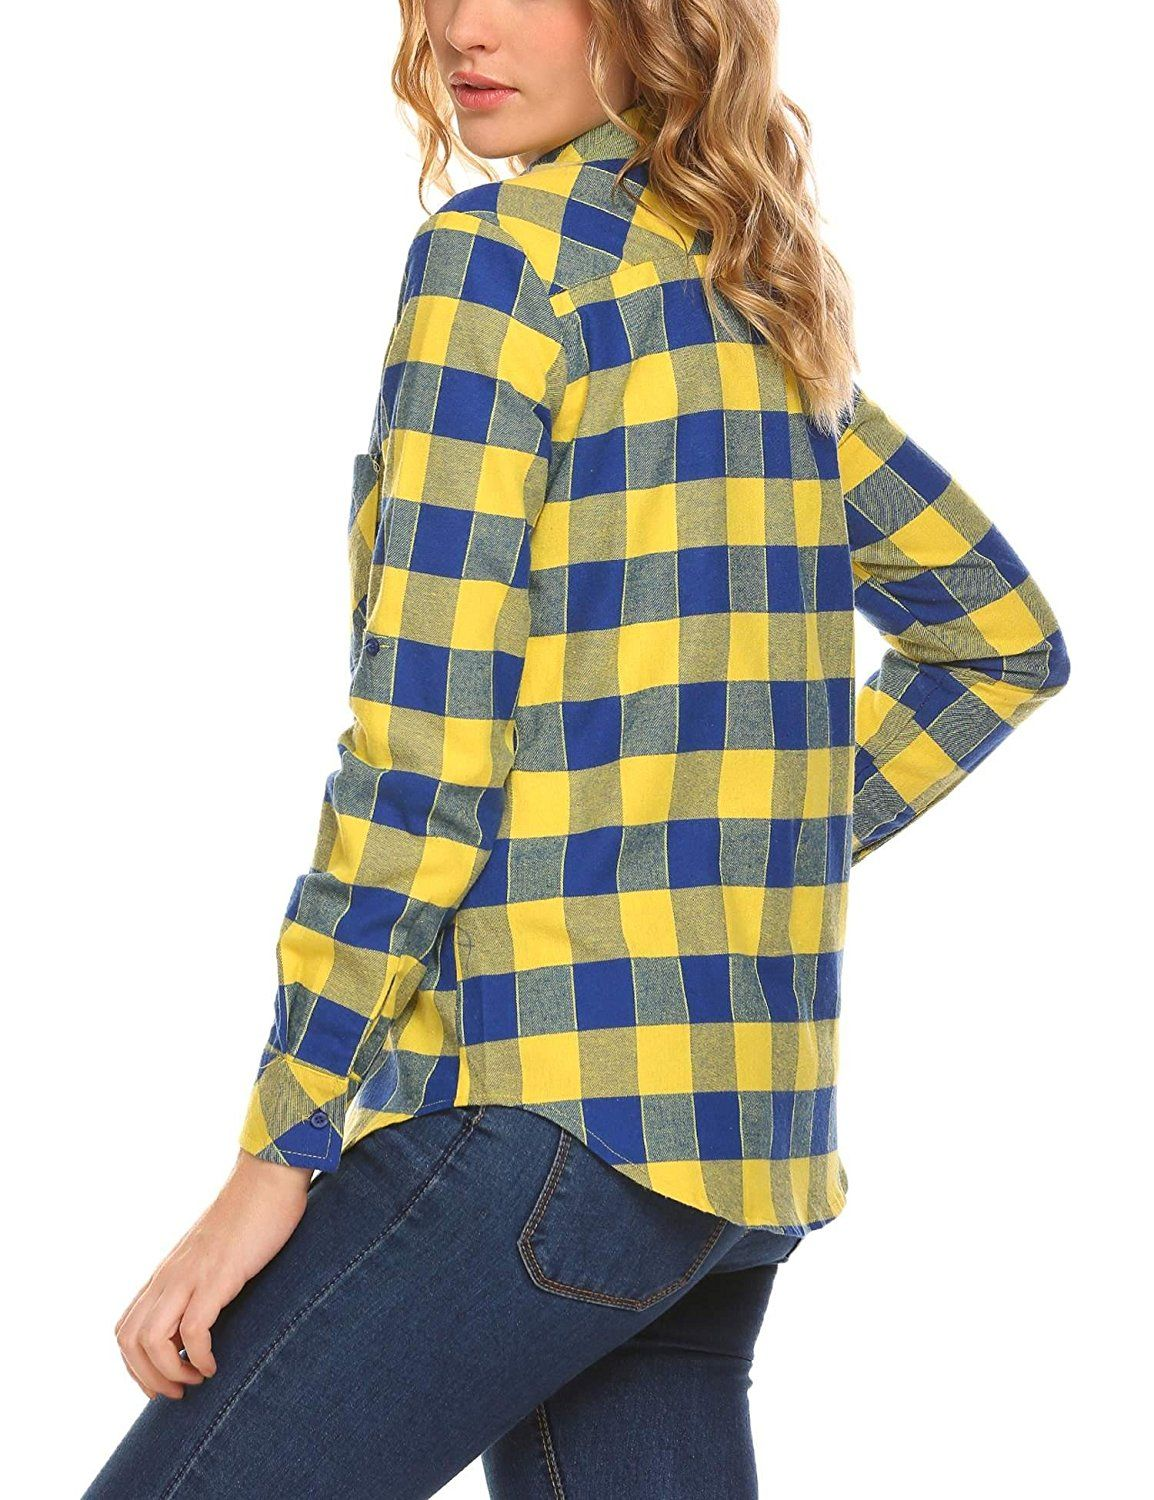 0f8f9d88bcad Womens Country Button Up Shirts